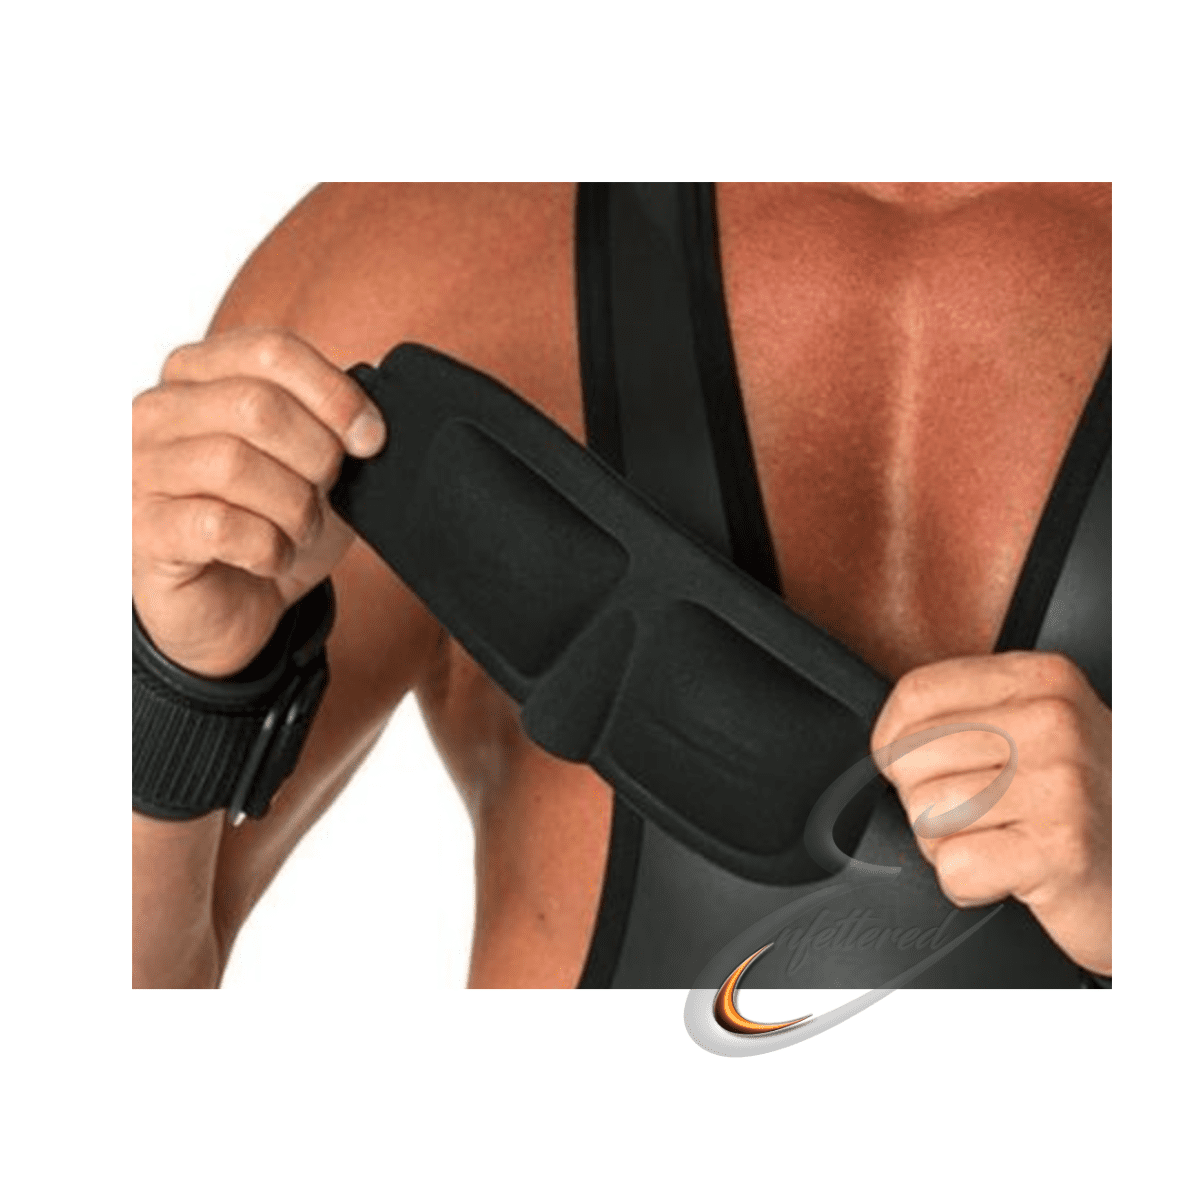 Enfettered Neoprene Blindfold